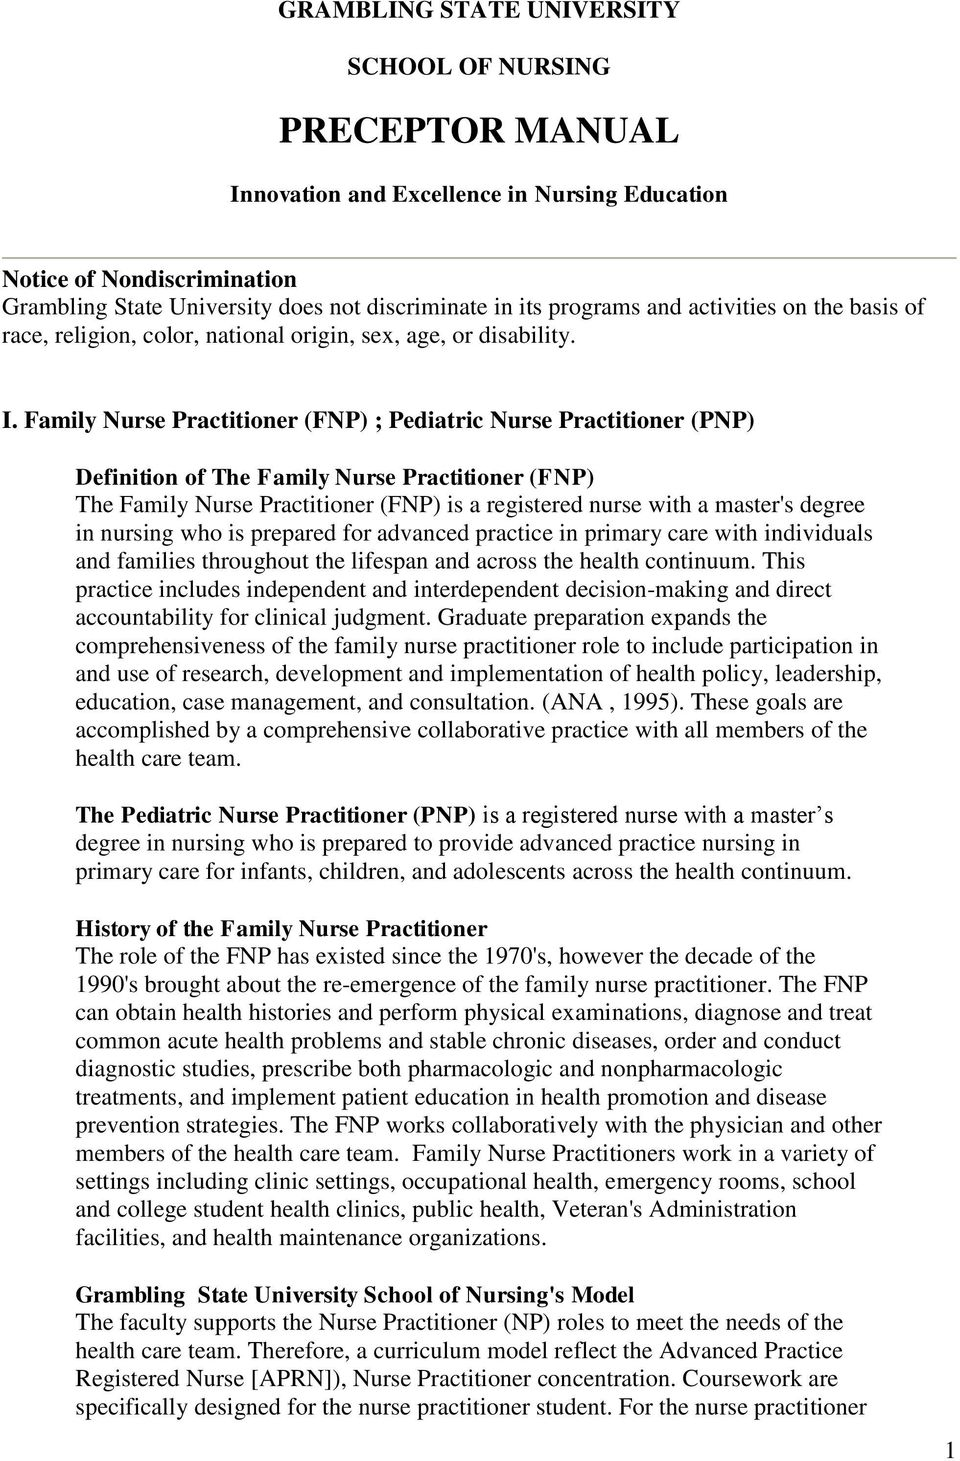 Family Nurse Practitioner (FNP) ; Pediatric Nurse Practitioner (PNP) Definition of The Family Nurse Practitioner (FNP) The Family Nurse Practitioner (FNP) is a registered nurse with a master's degree